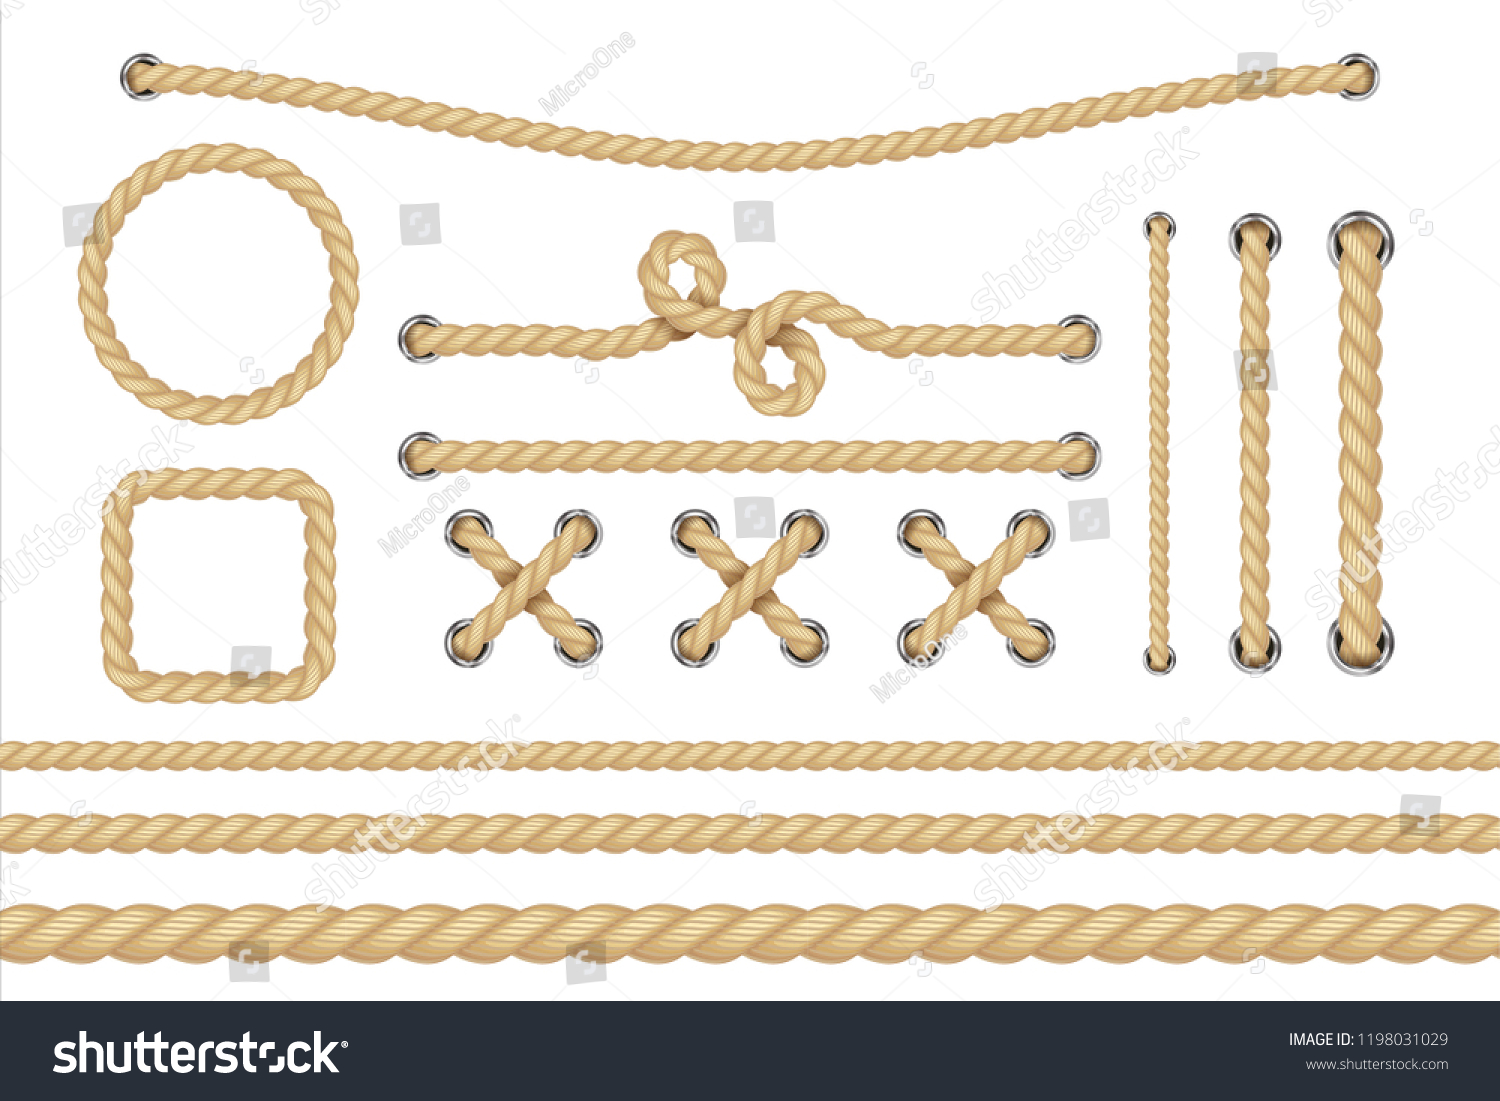 Nautical rope. Round and square rope frames, cord borders. Sailing vector decoration elements. Rope marine, nautical border, cord round, string knot twisted illustration #1198031029